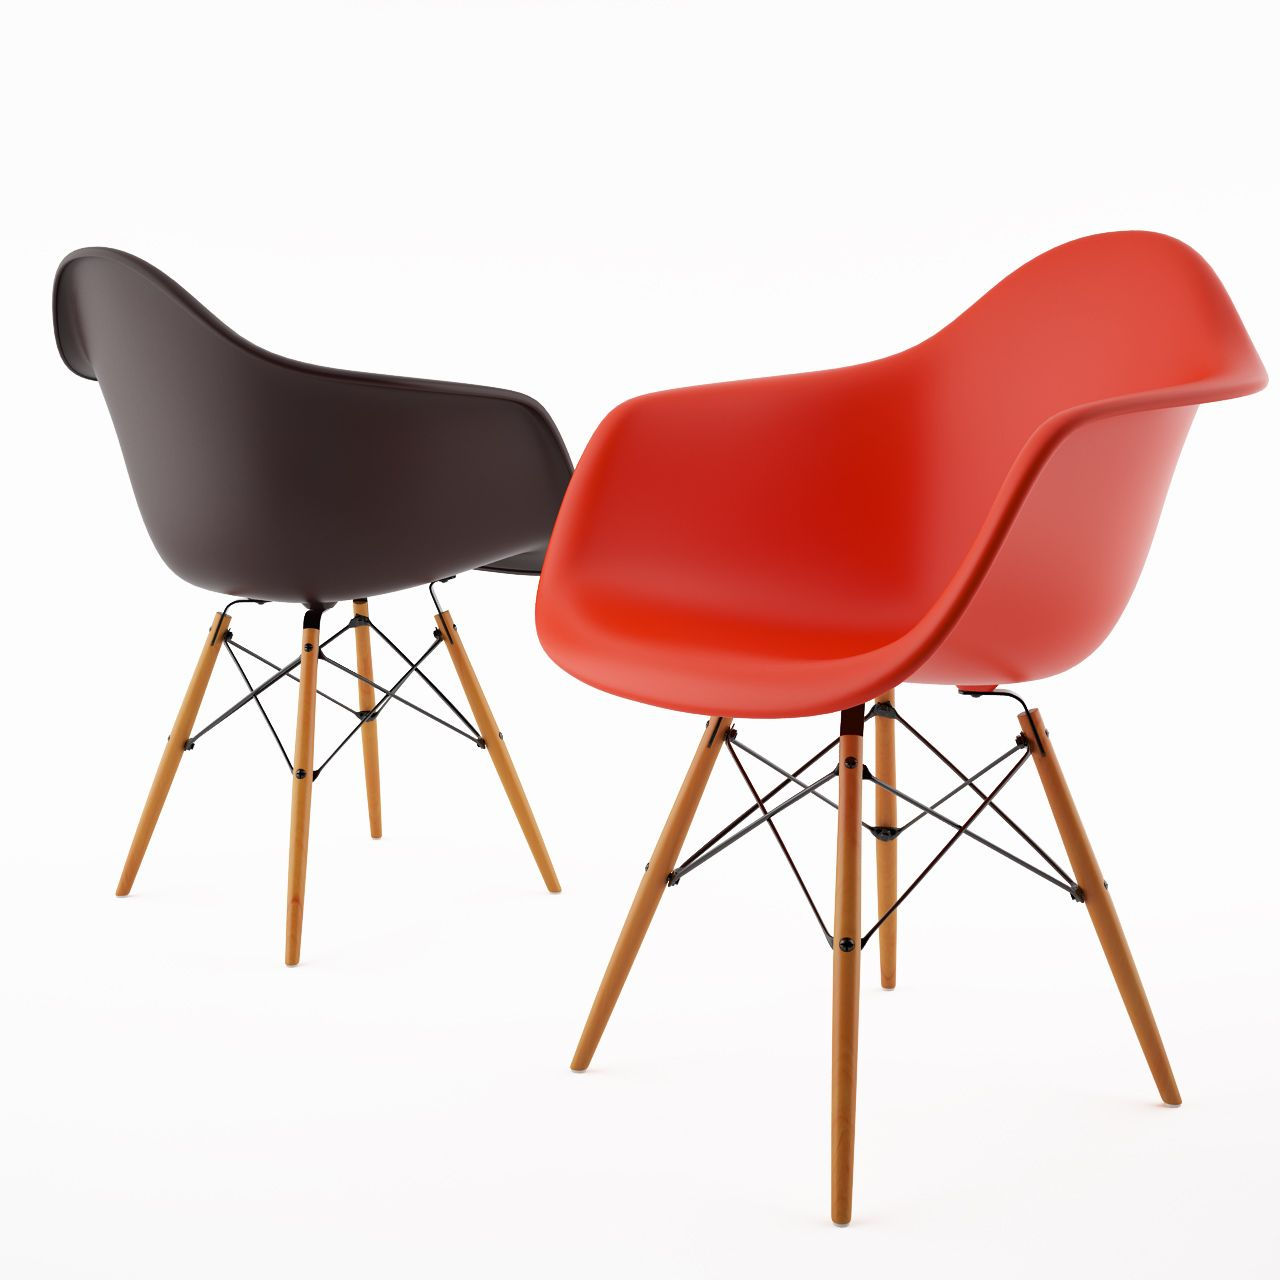 Eames Chair Autocad Block Pin By Dimensiva On 3d Models Furniture Eames